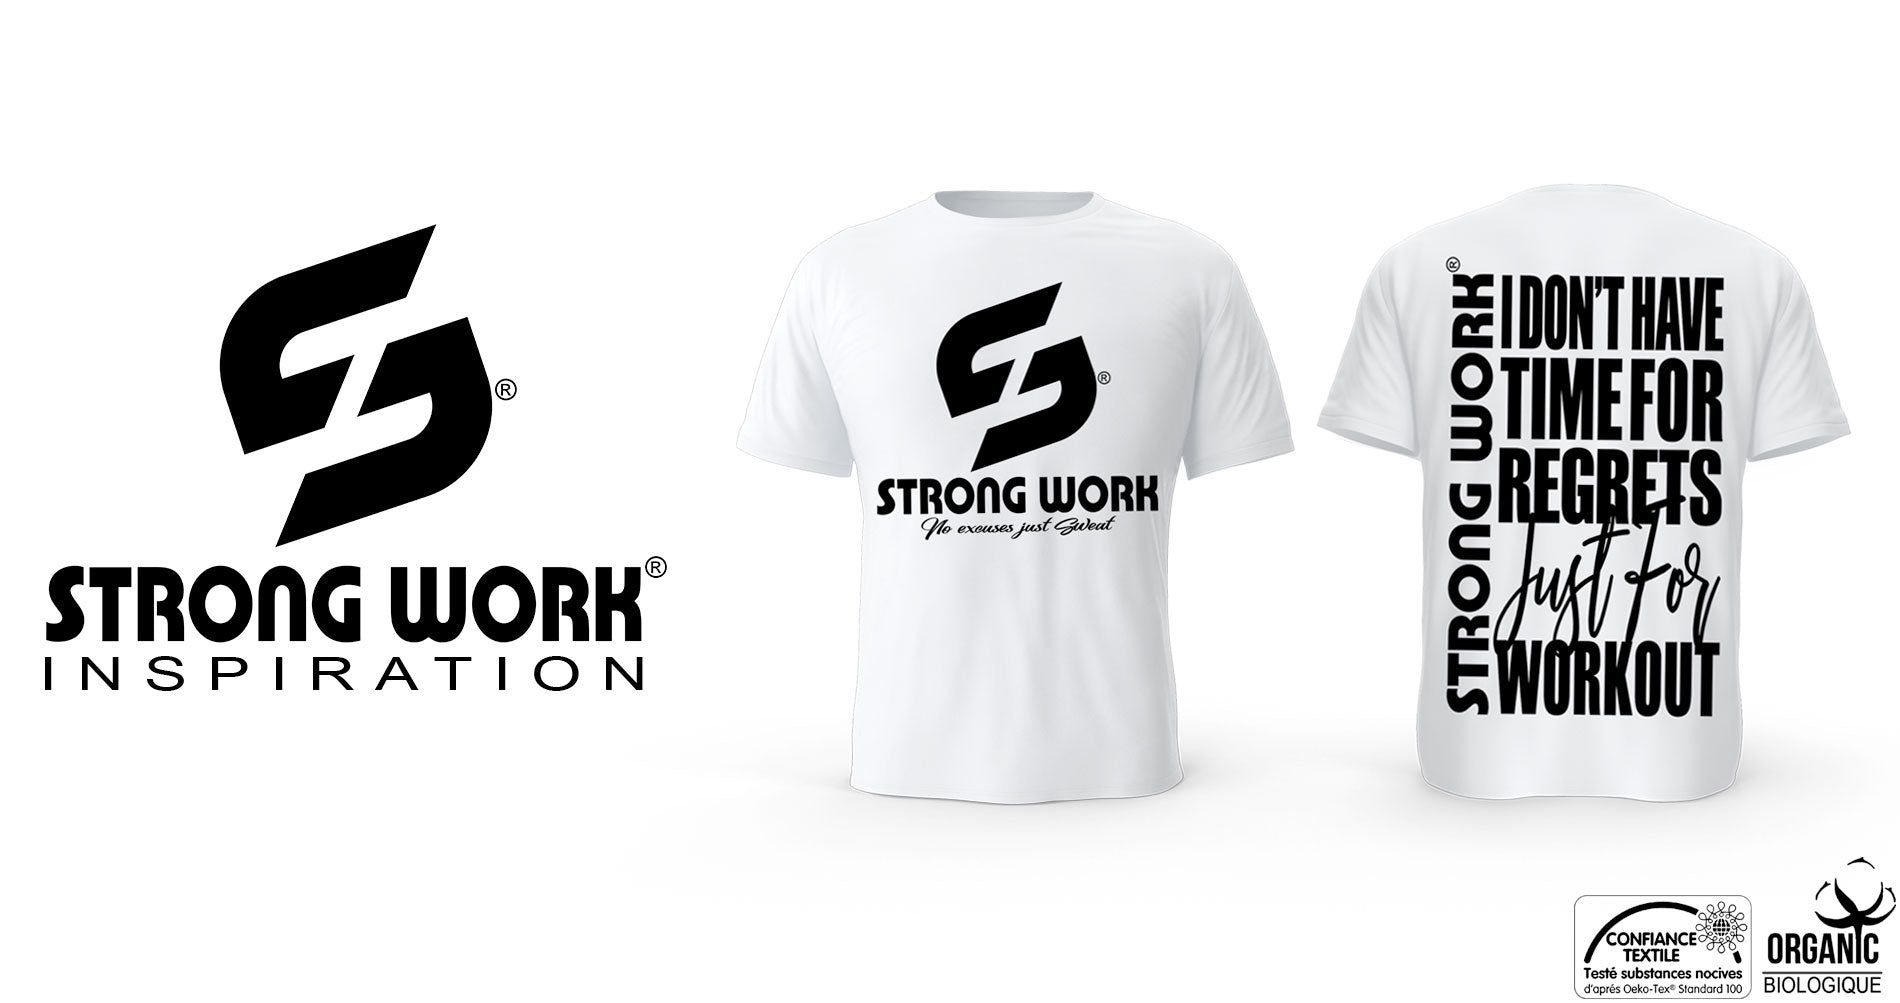 T-Shirt Strong Work I DON'T HAVE TIME FOR REGRETS JUST FOR WORKOUT pour Homme